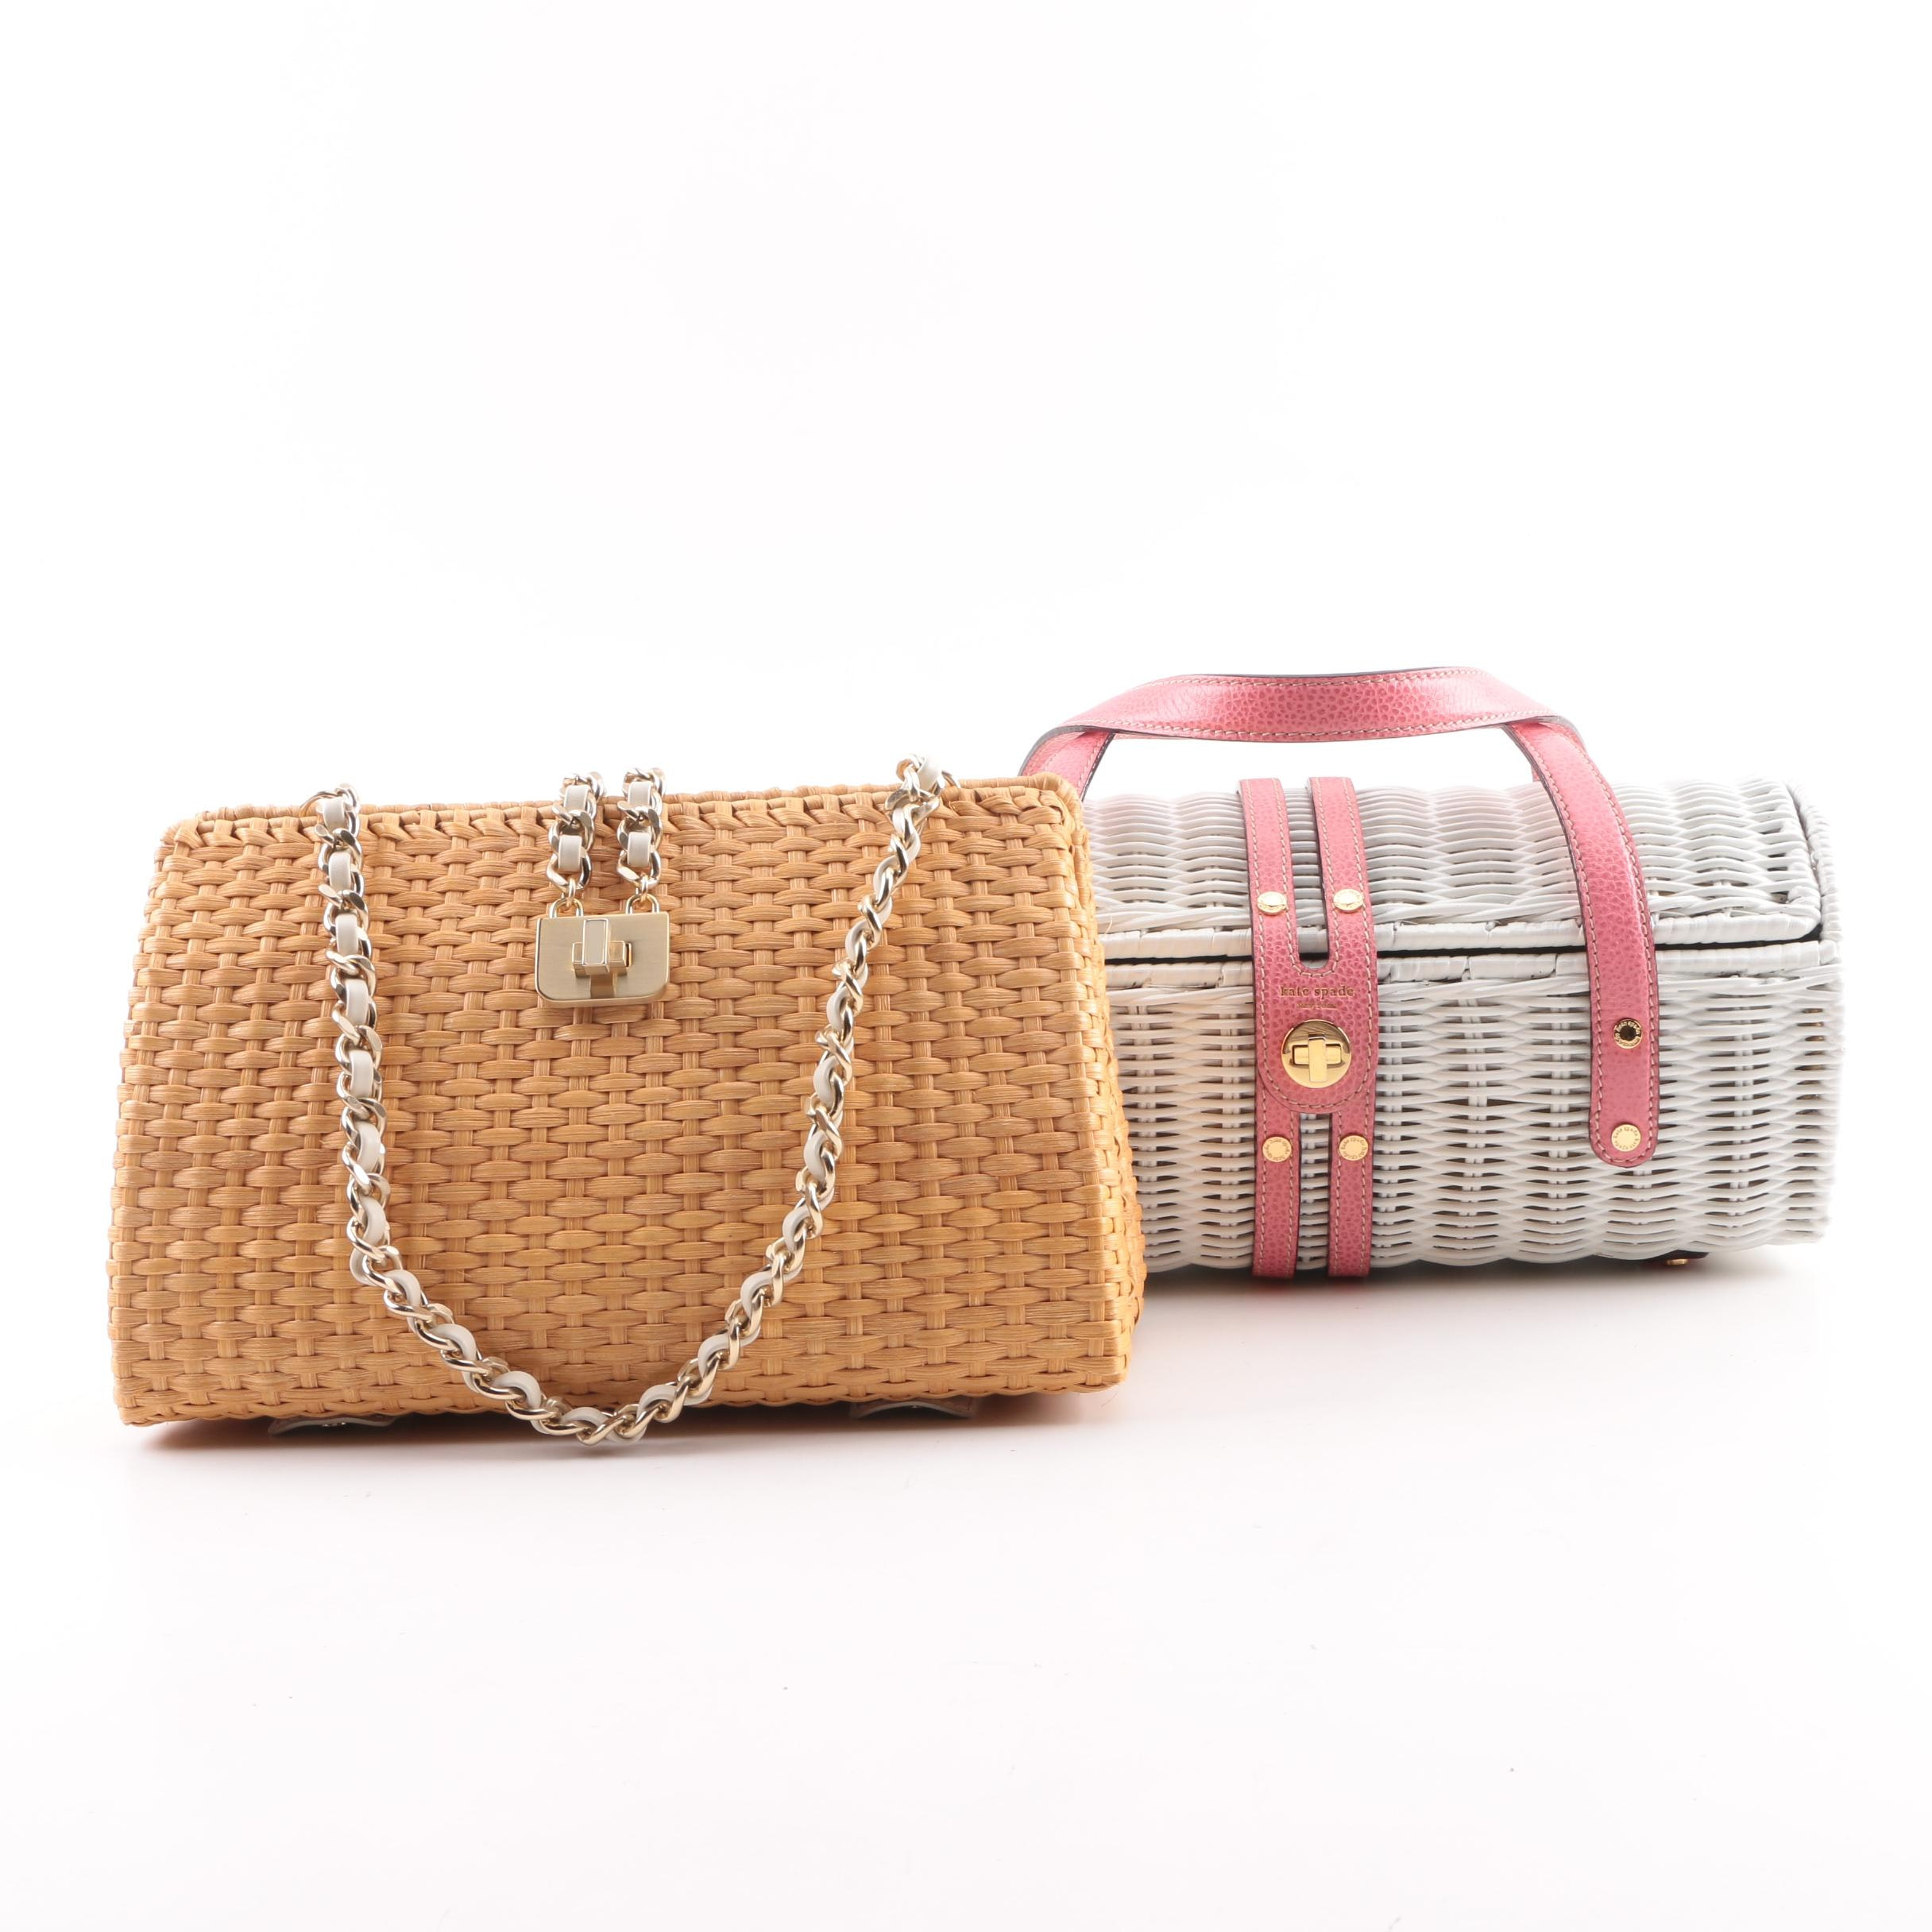 Kate Spade New York and Ann Taylor Wicker Basket Bags